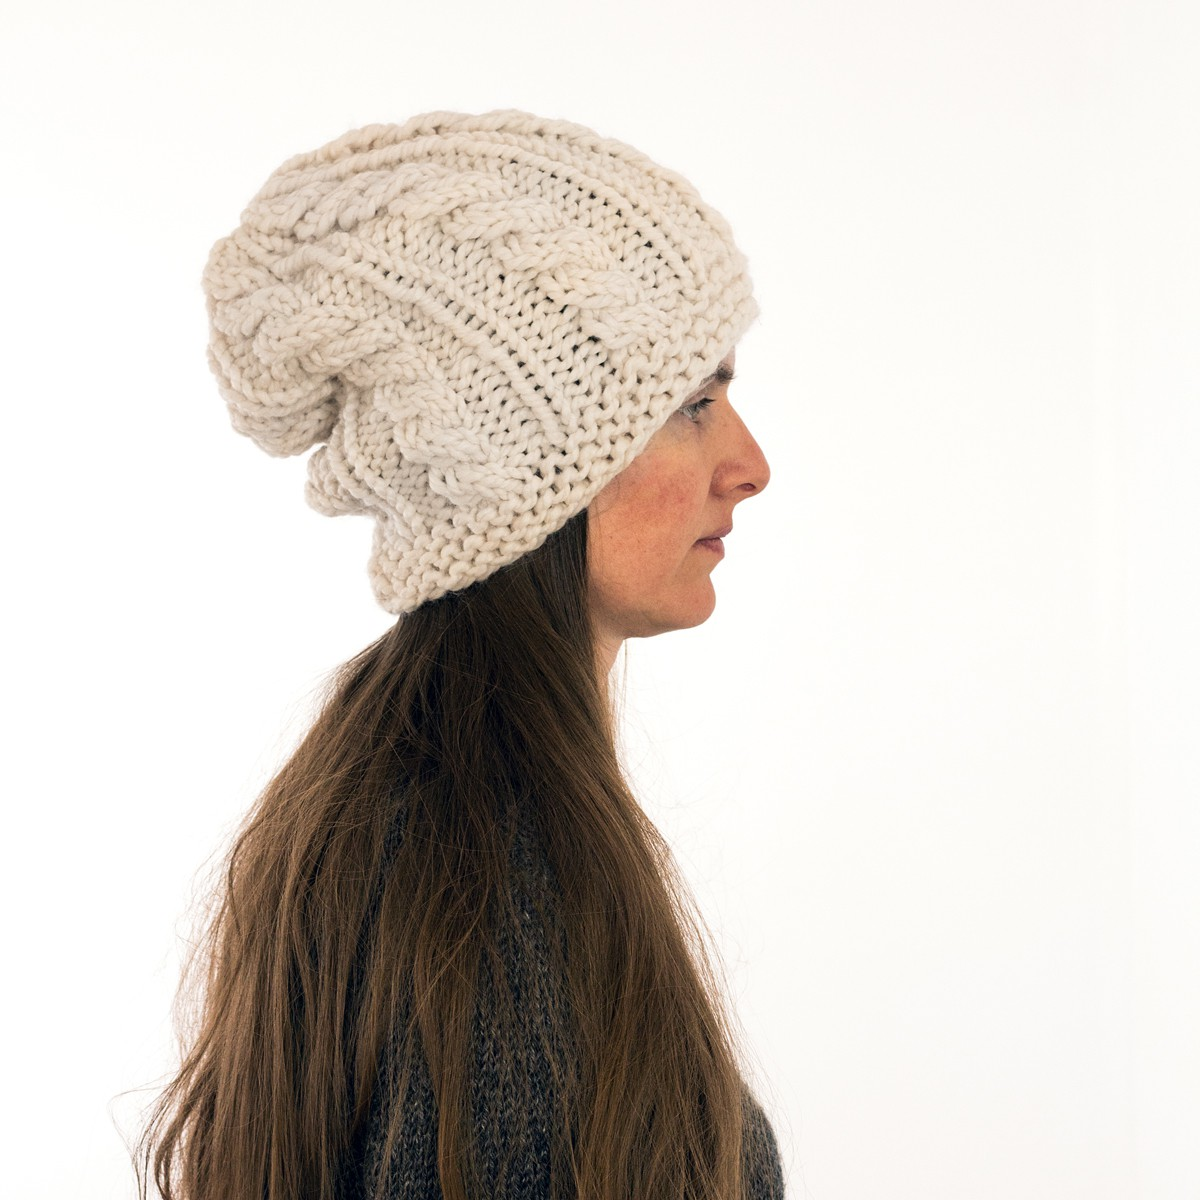 OPTIMISTIC : Women\'s Slouchy Hat Knitting Pattern - Brome Fields